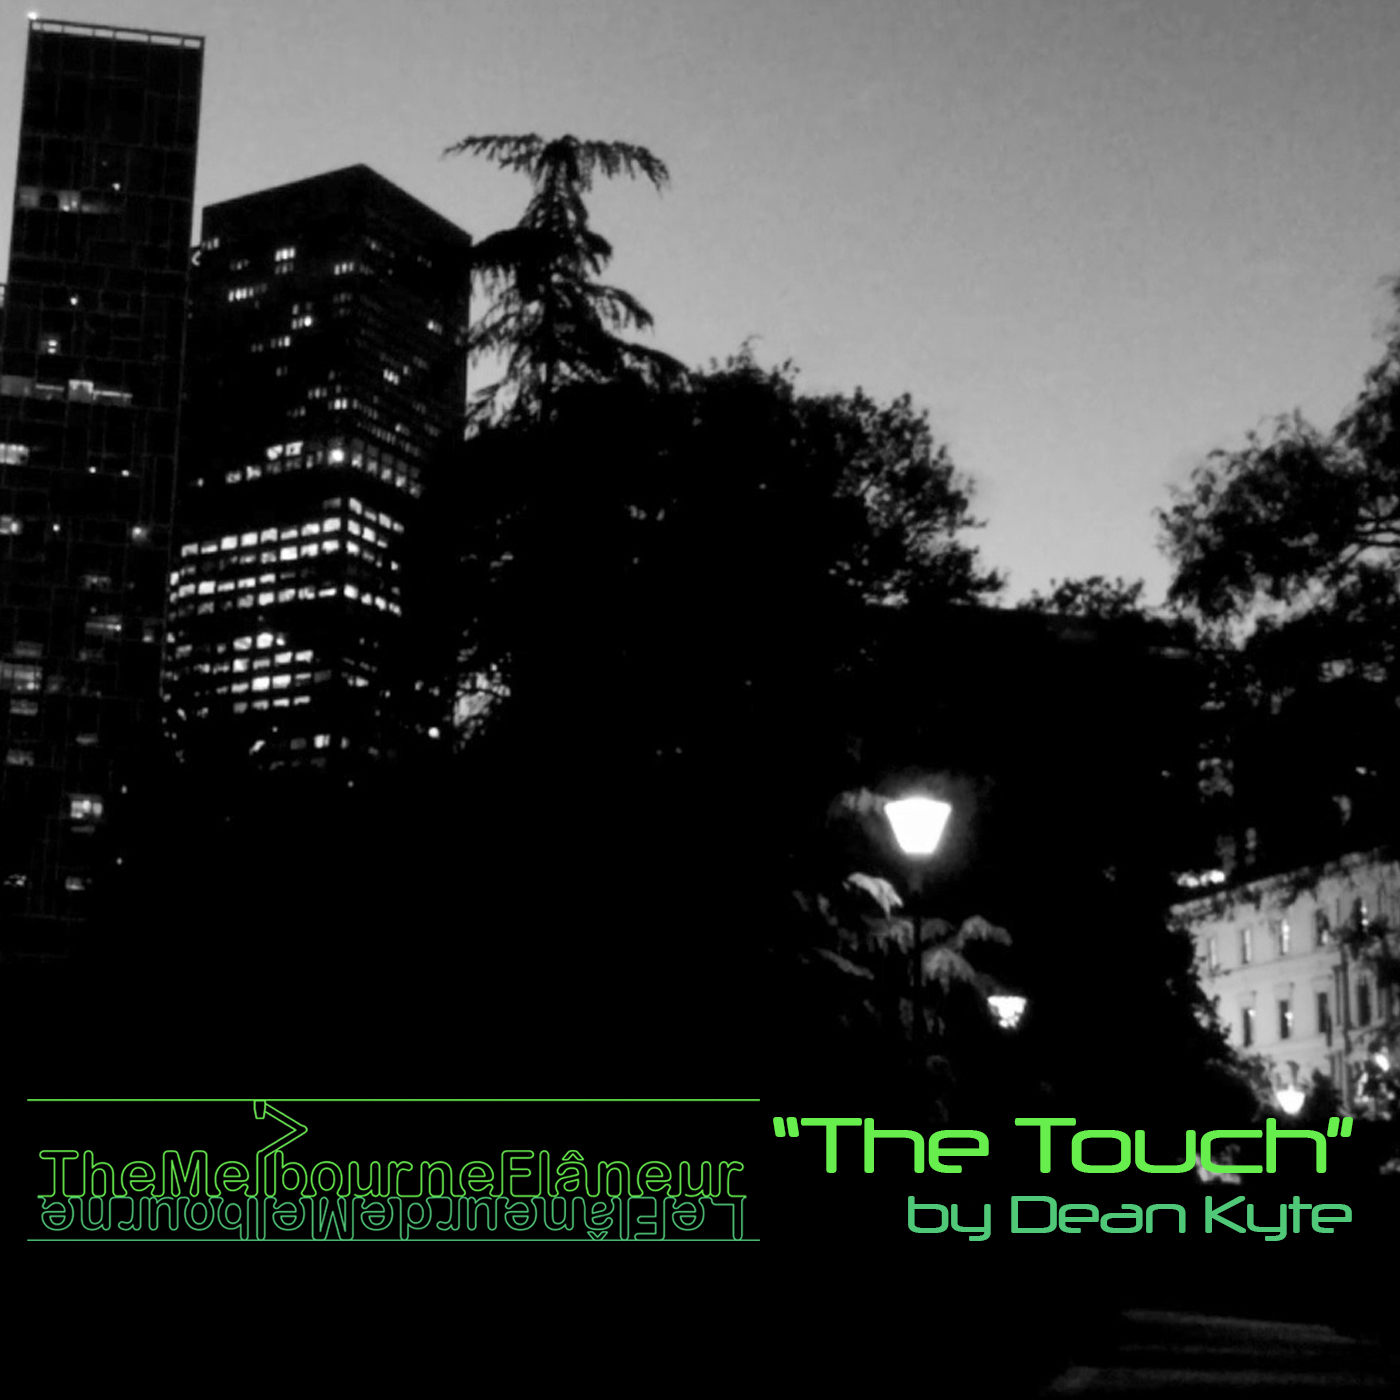 """""""The Melbourne Flâneur"""": """"The Touch"""" by Dean Kyte."""